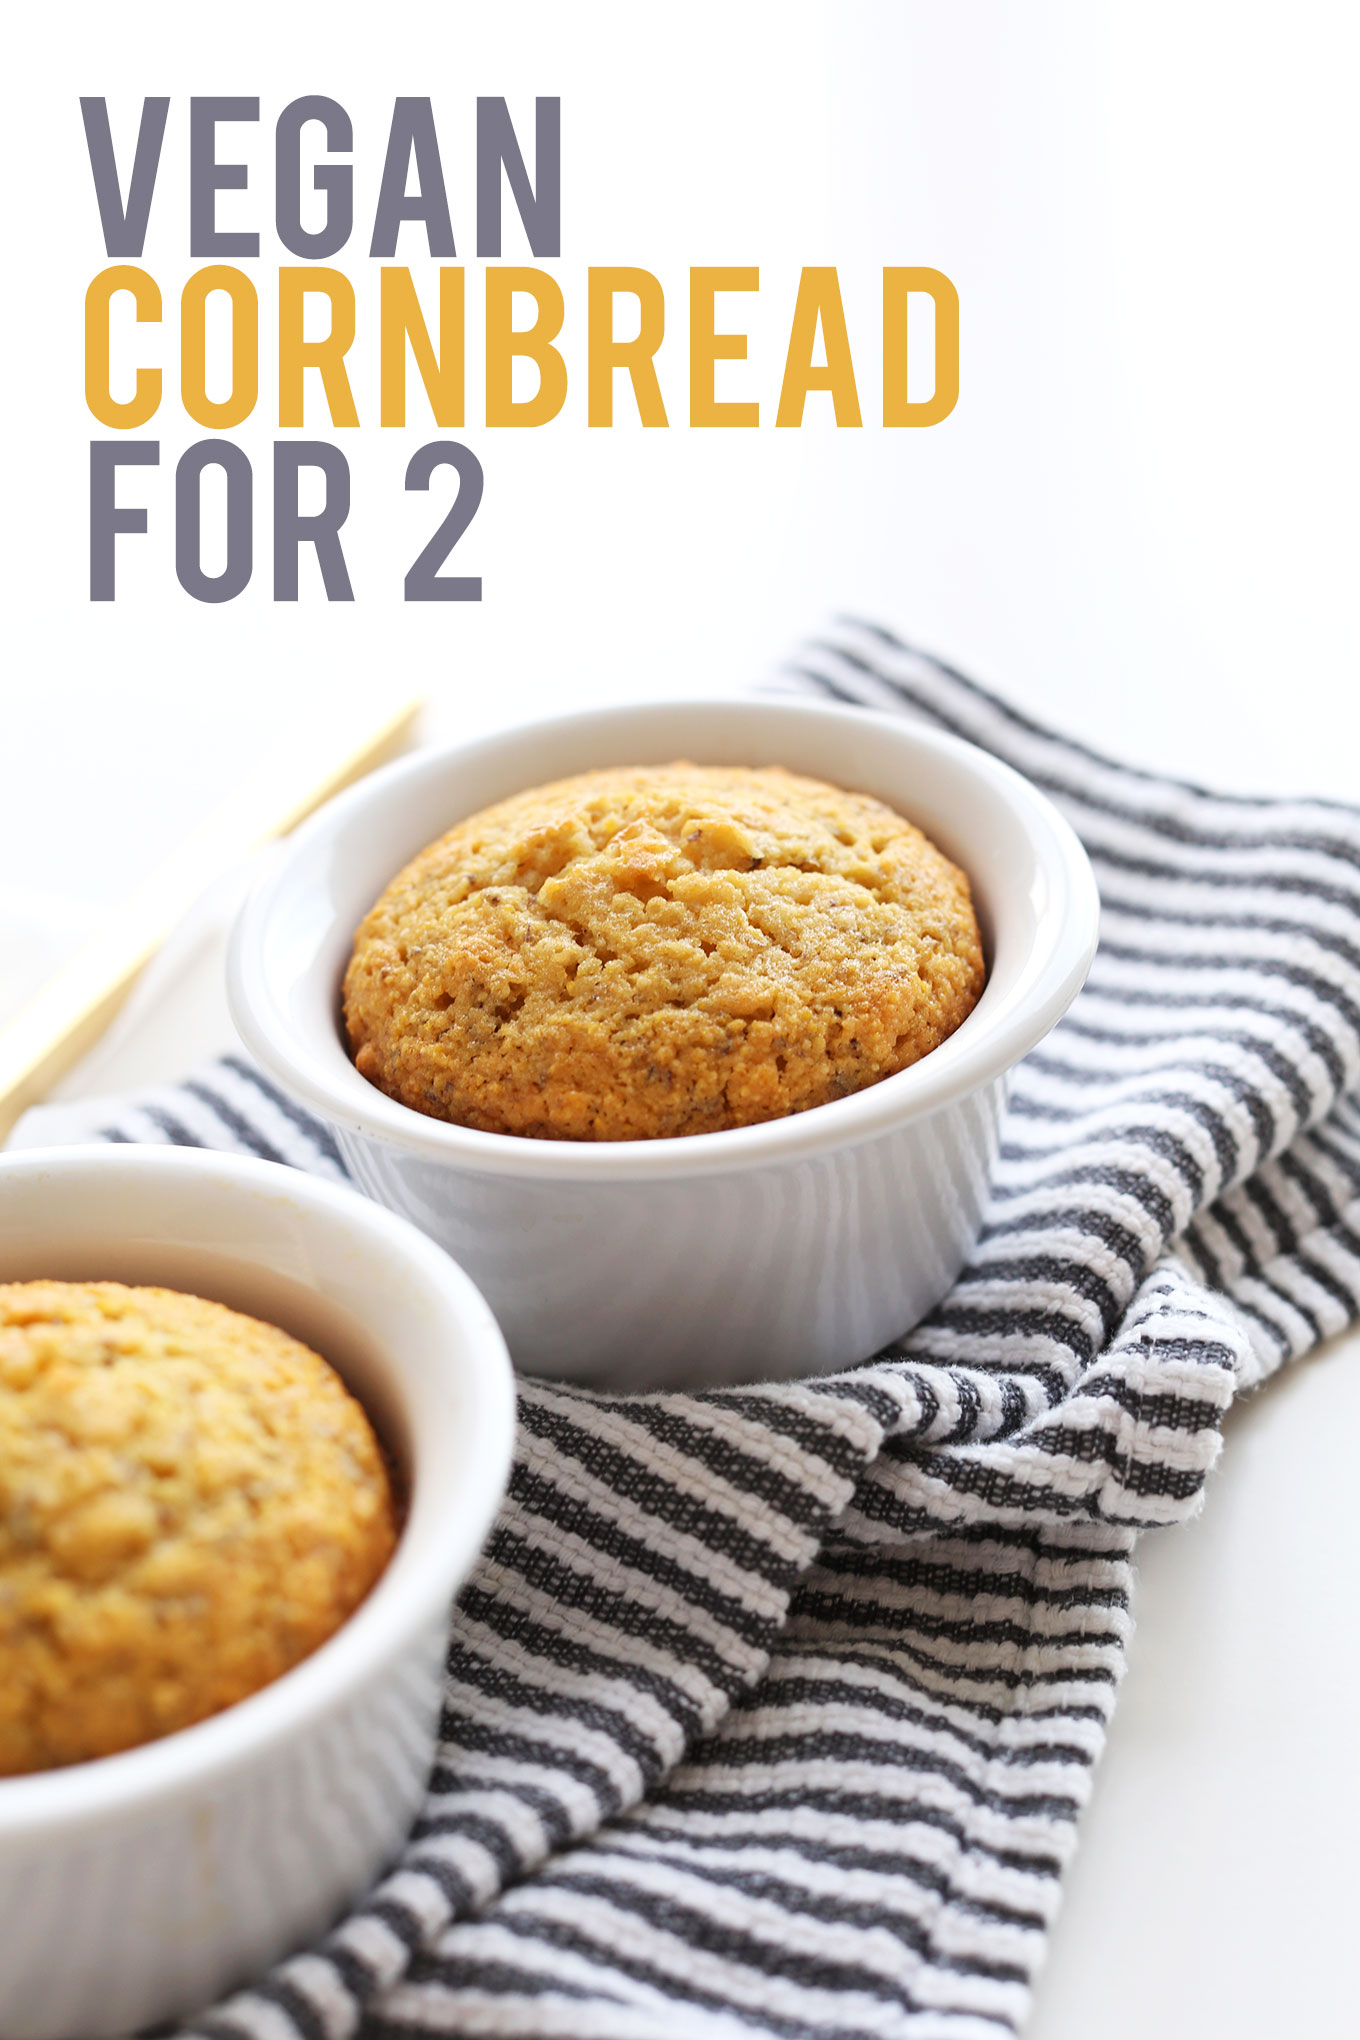 Batch of our crumbly and moist Vegan Cornbread recipe for two people